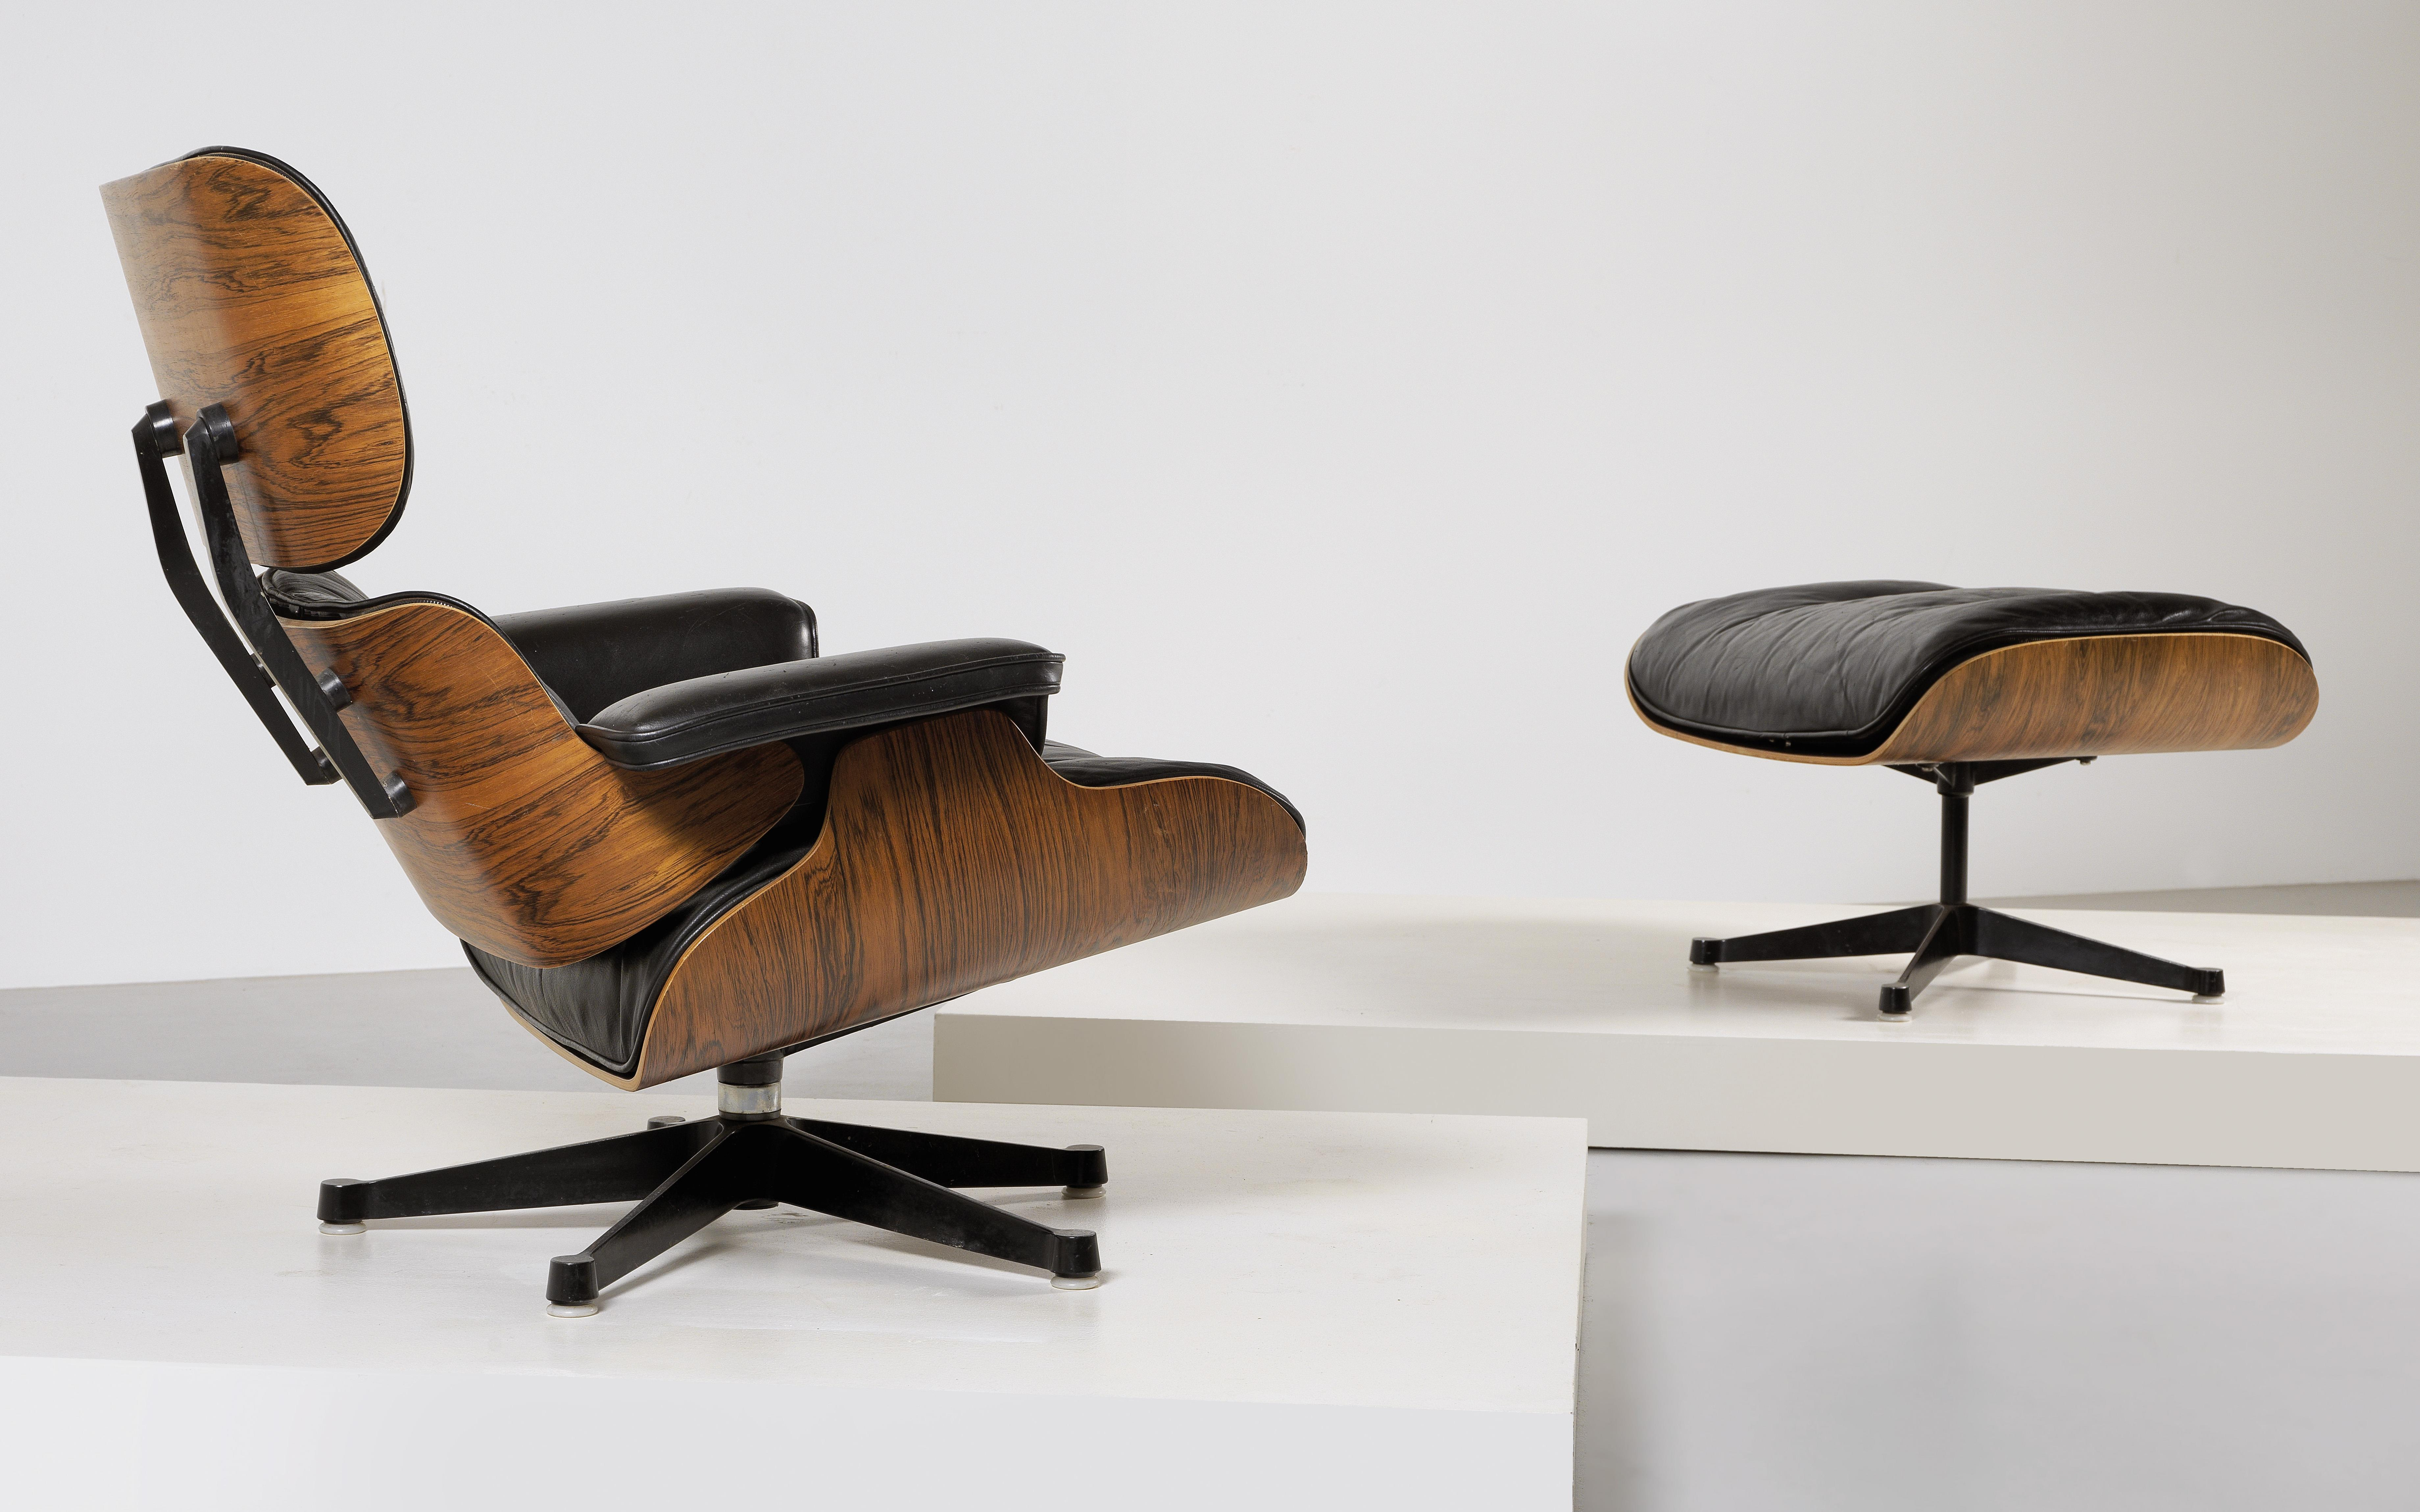 Awe Inspiring Lounge Chair With Ottoman Designed By Charles Ray Eames Machost Co Dining Chair Design Ideas Machostcouk